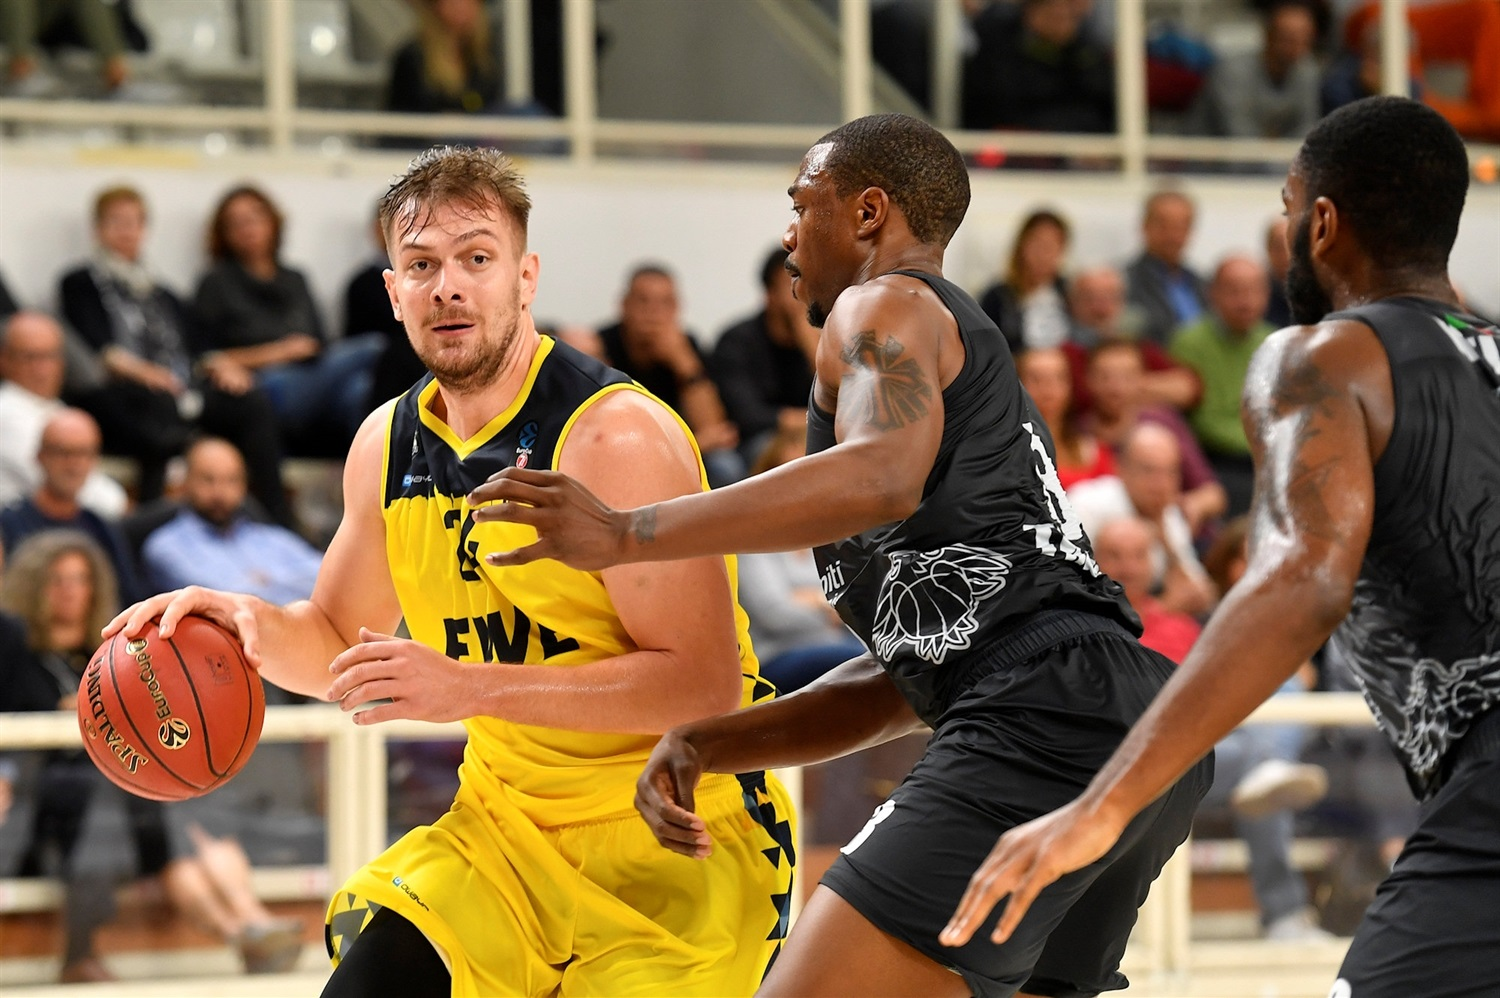 Rasid Mahalbasic - EWE Baskets Oldenburg (photo Trento) - EC19